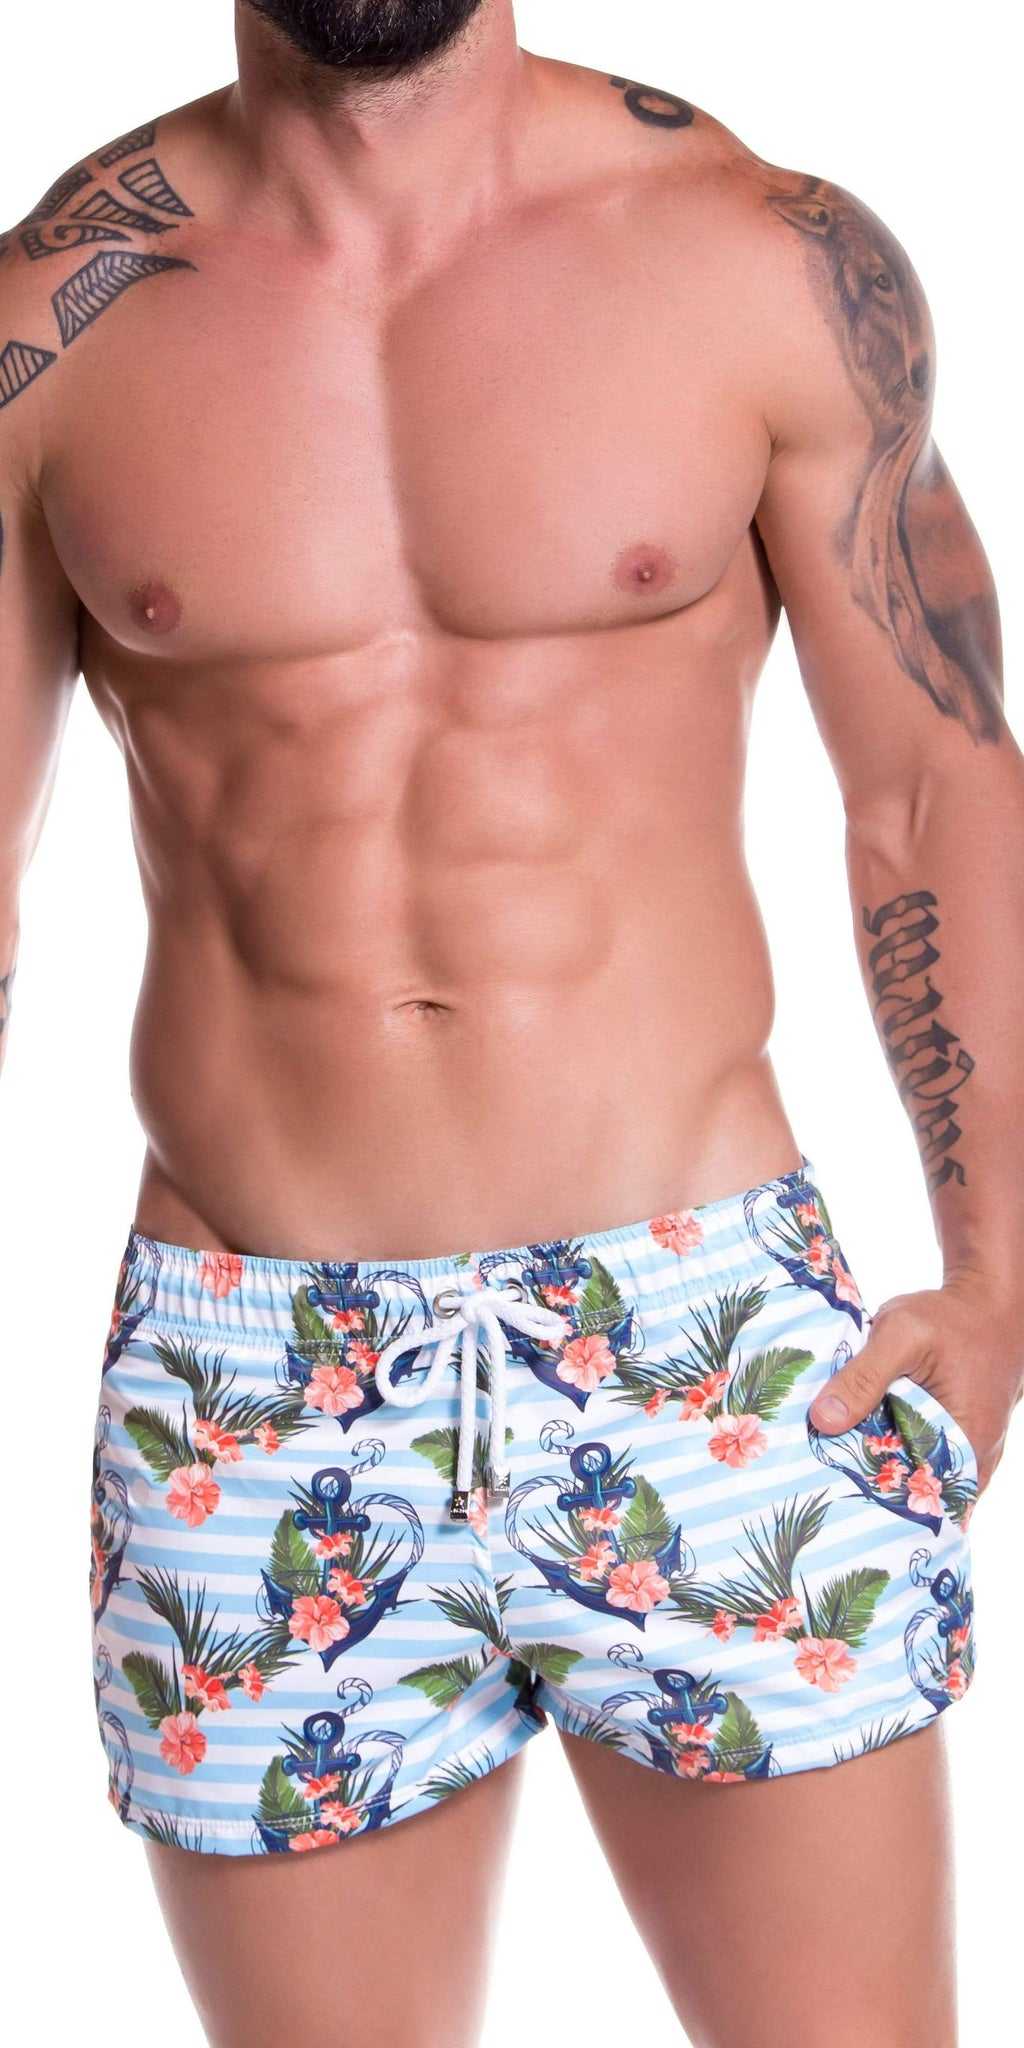 JOR Aqua Mini Short Swim Trunk In Printed